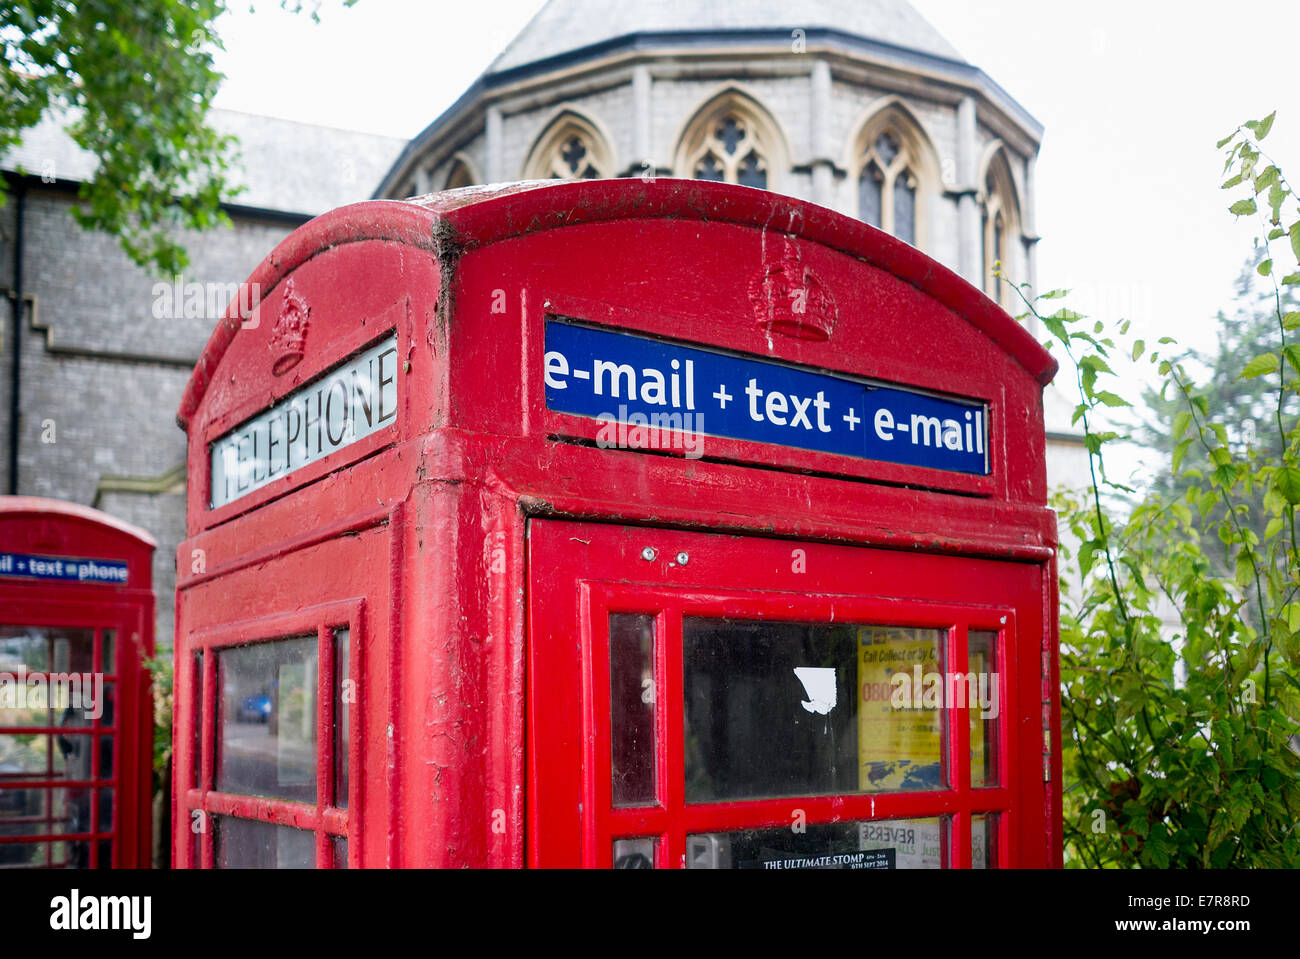 Classic red post office telephone box showing modern services including e-mail and text messaging - Stock Image